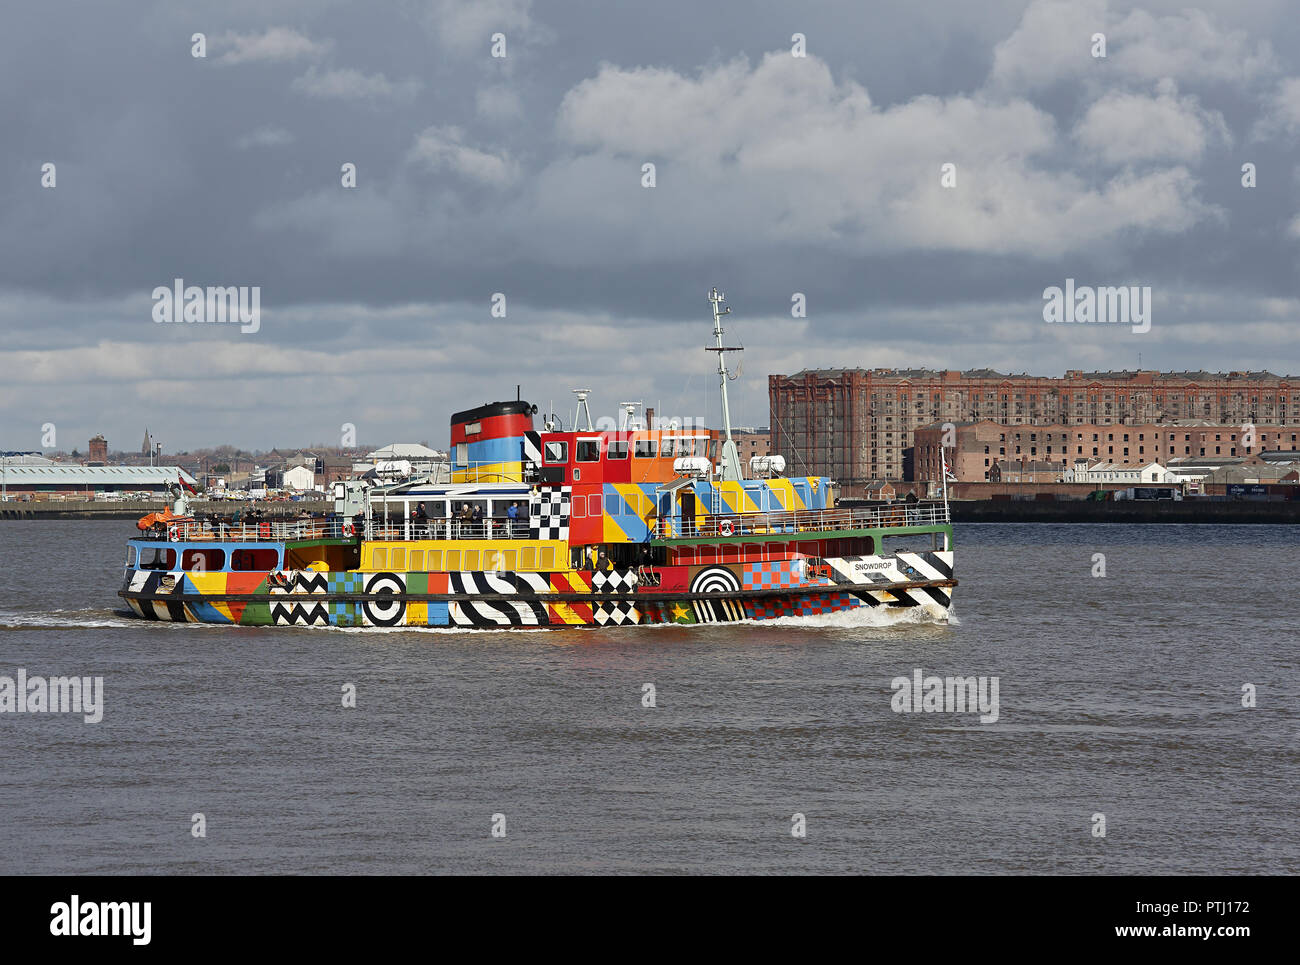 Mersey Ferry Snowdrop sailing up river on the River Mersey Liverpool UK December 54054 - Stock Image